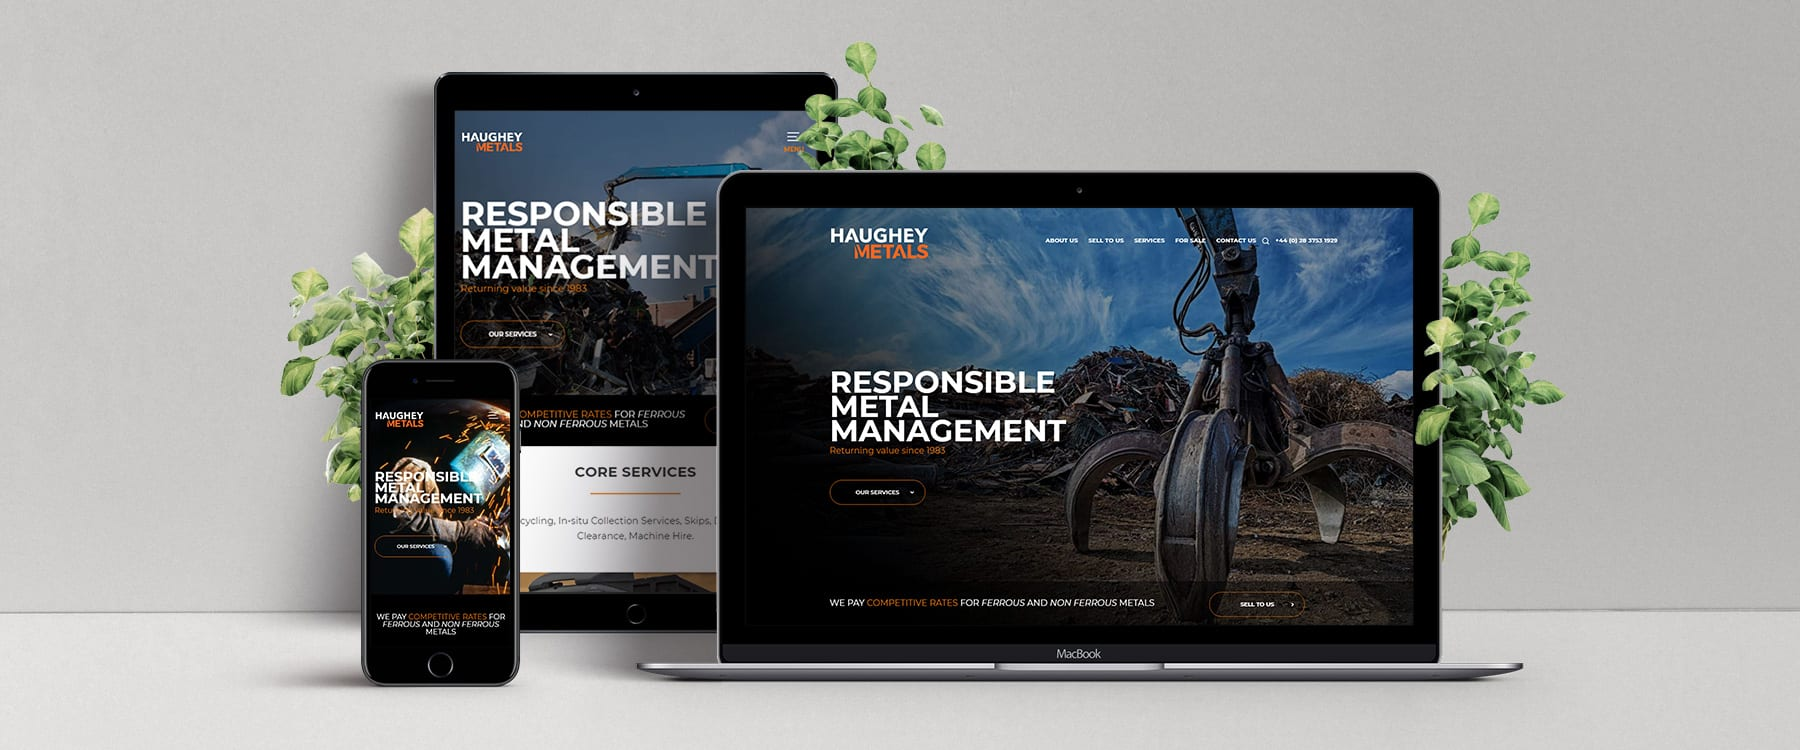 County Armagh Metal Management Company, Haughey Metals, Launch Professional New Website Image